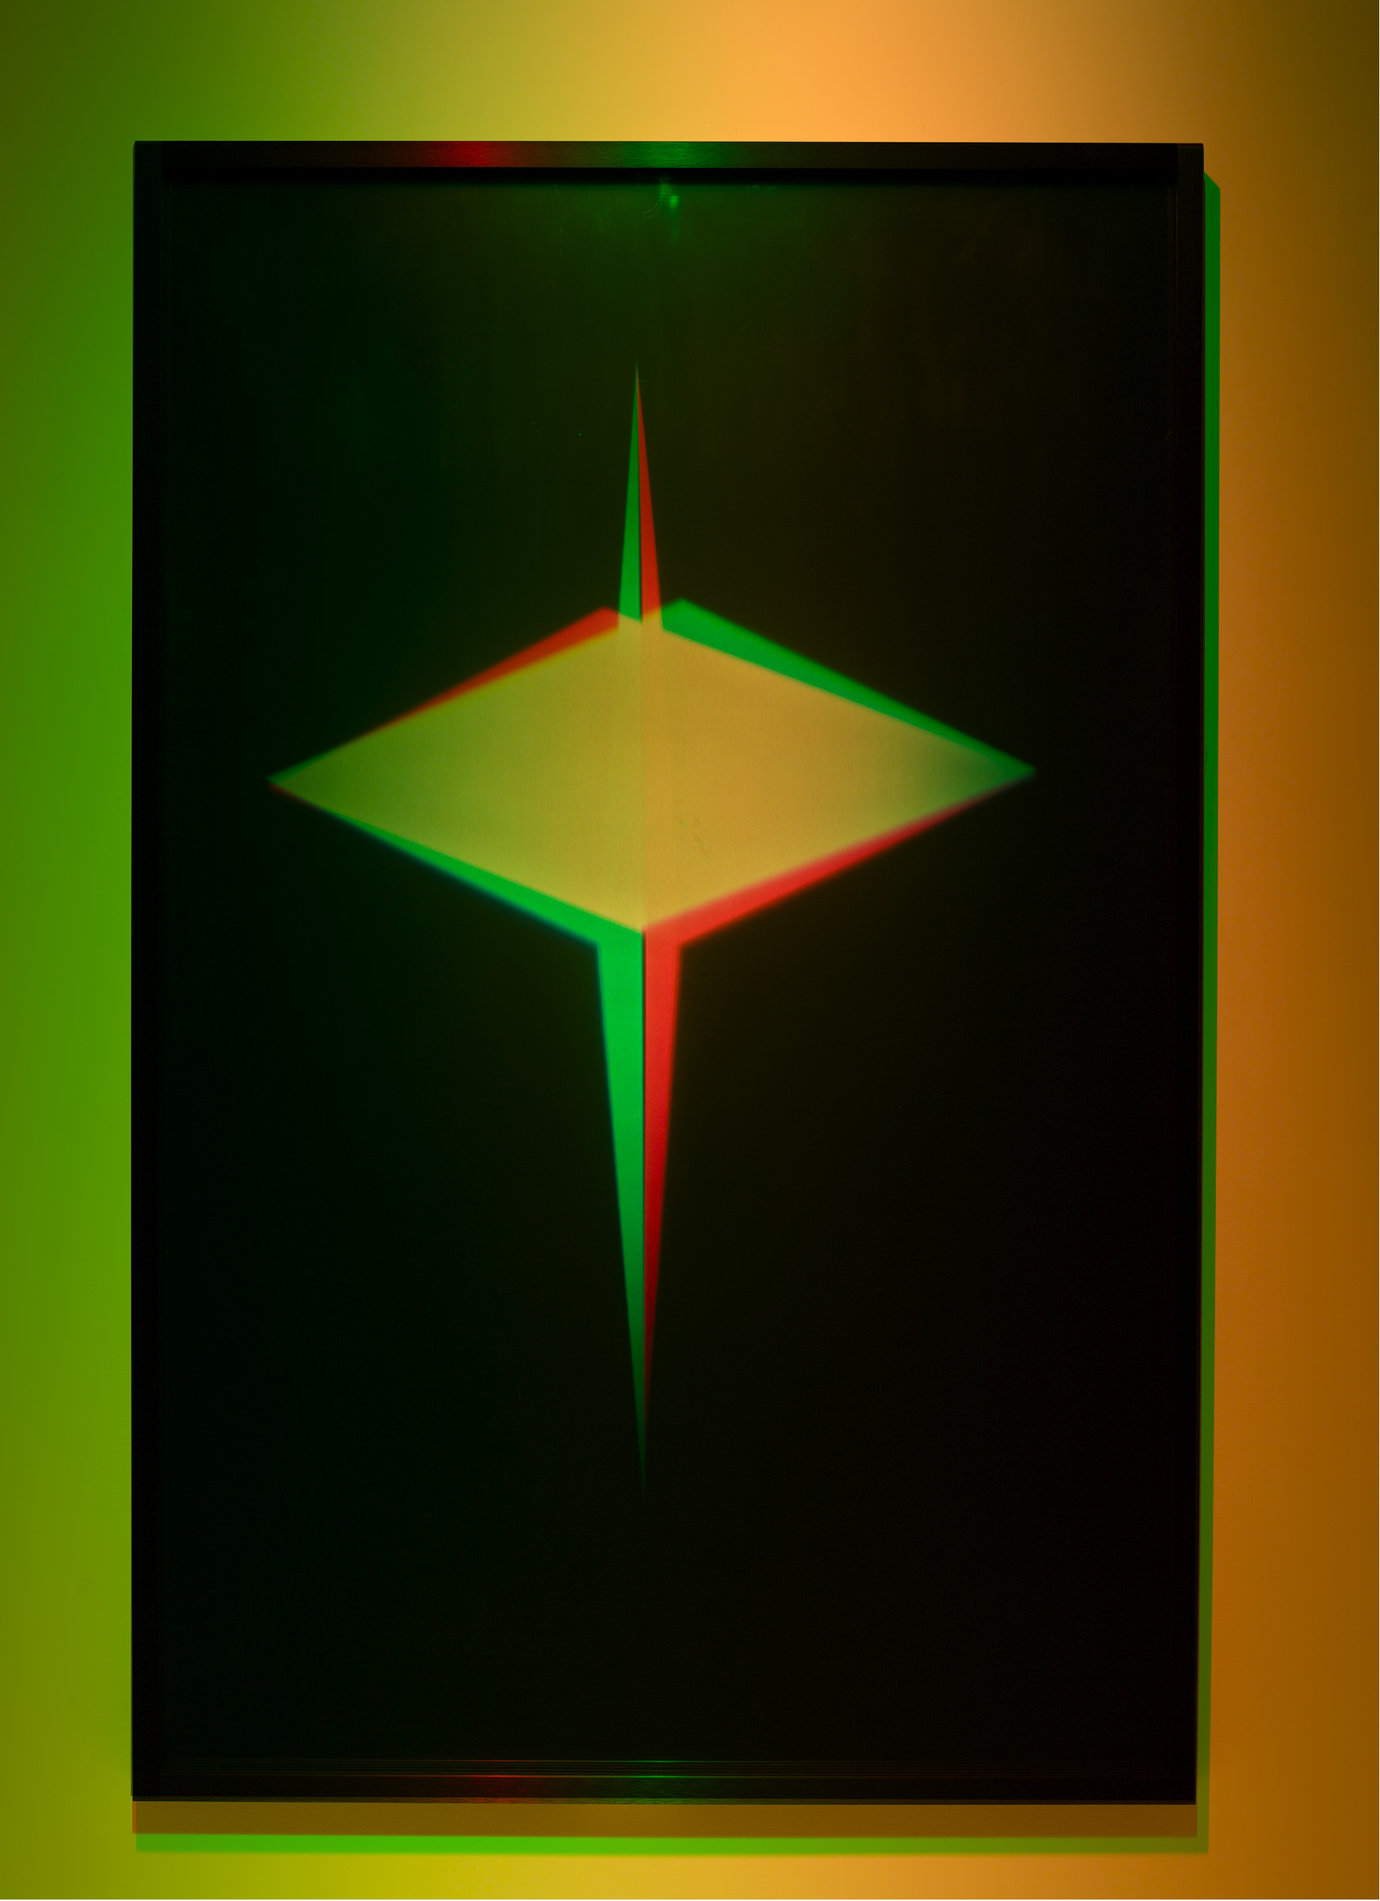 ", 2008. Transmission light work, 61-1/2"" x 39-1/2"" (156.2 cm x 100.3 cm)."